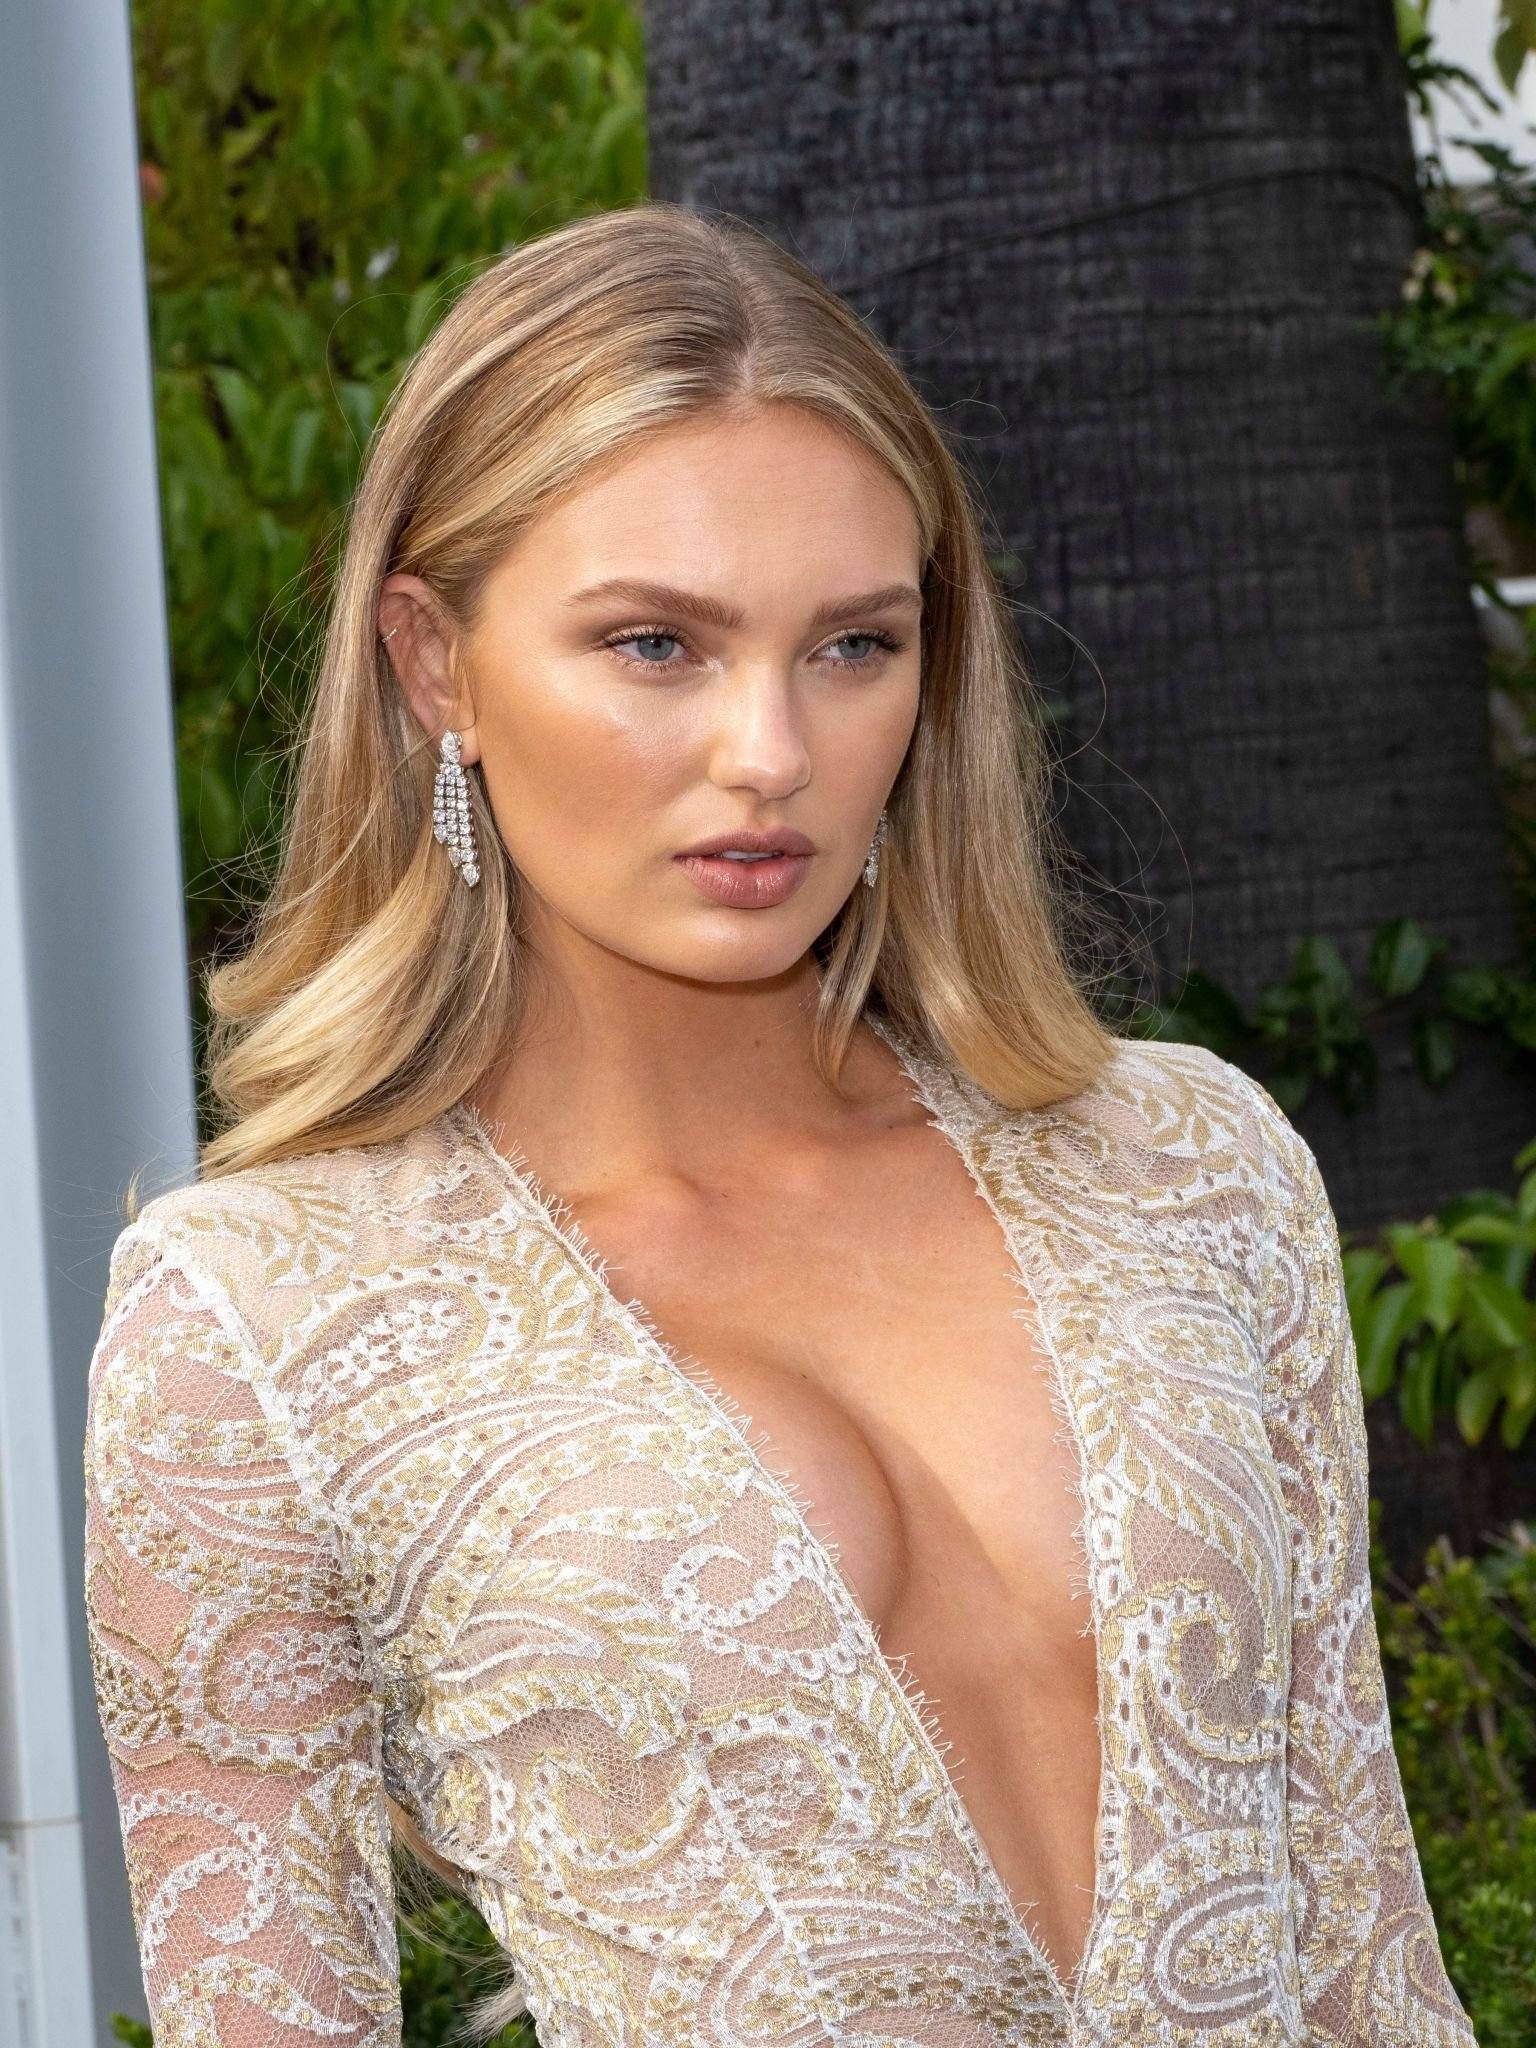 Romee Strijd Sexy Legs And Cleavage